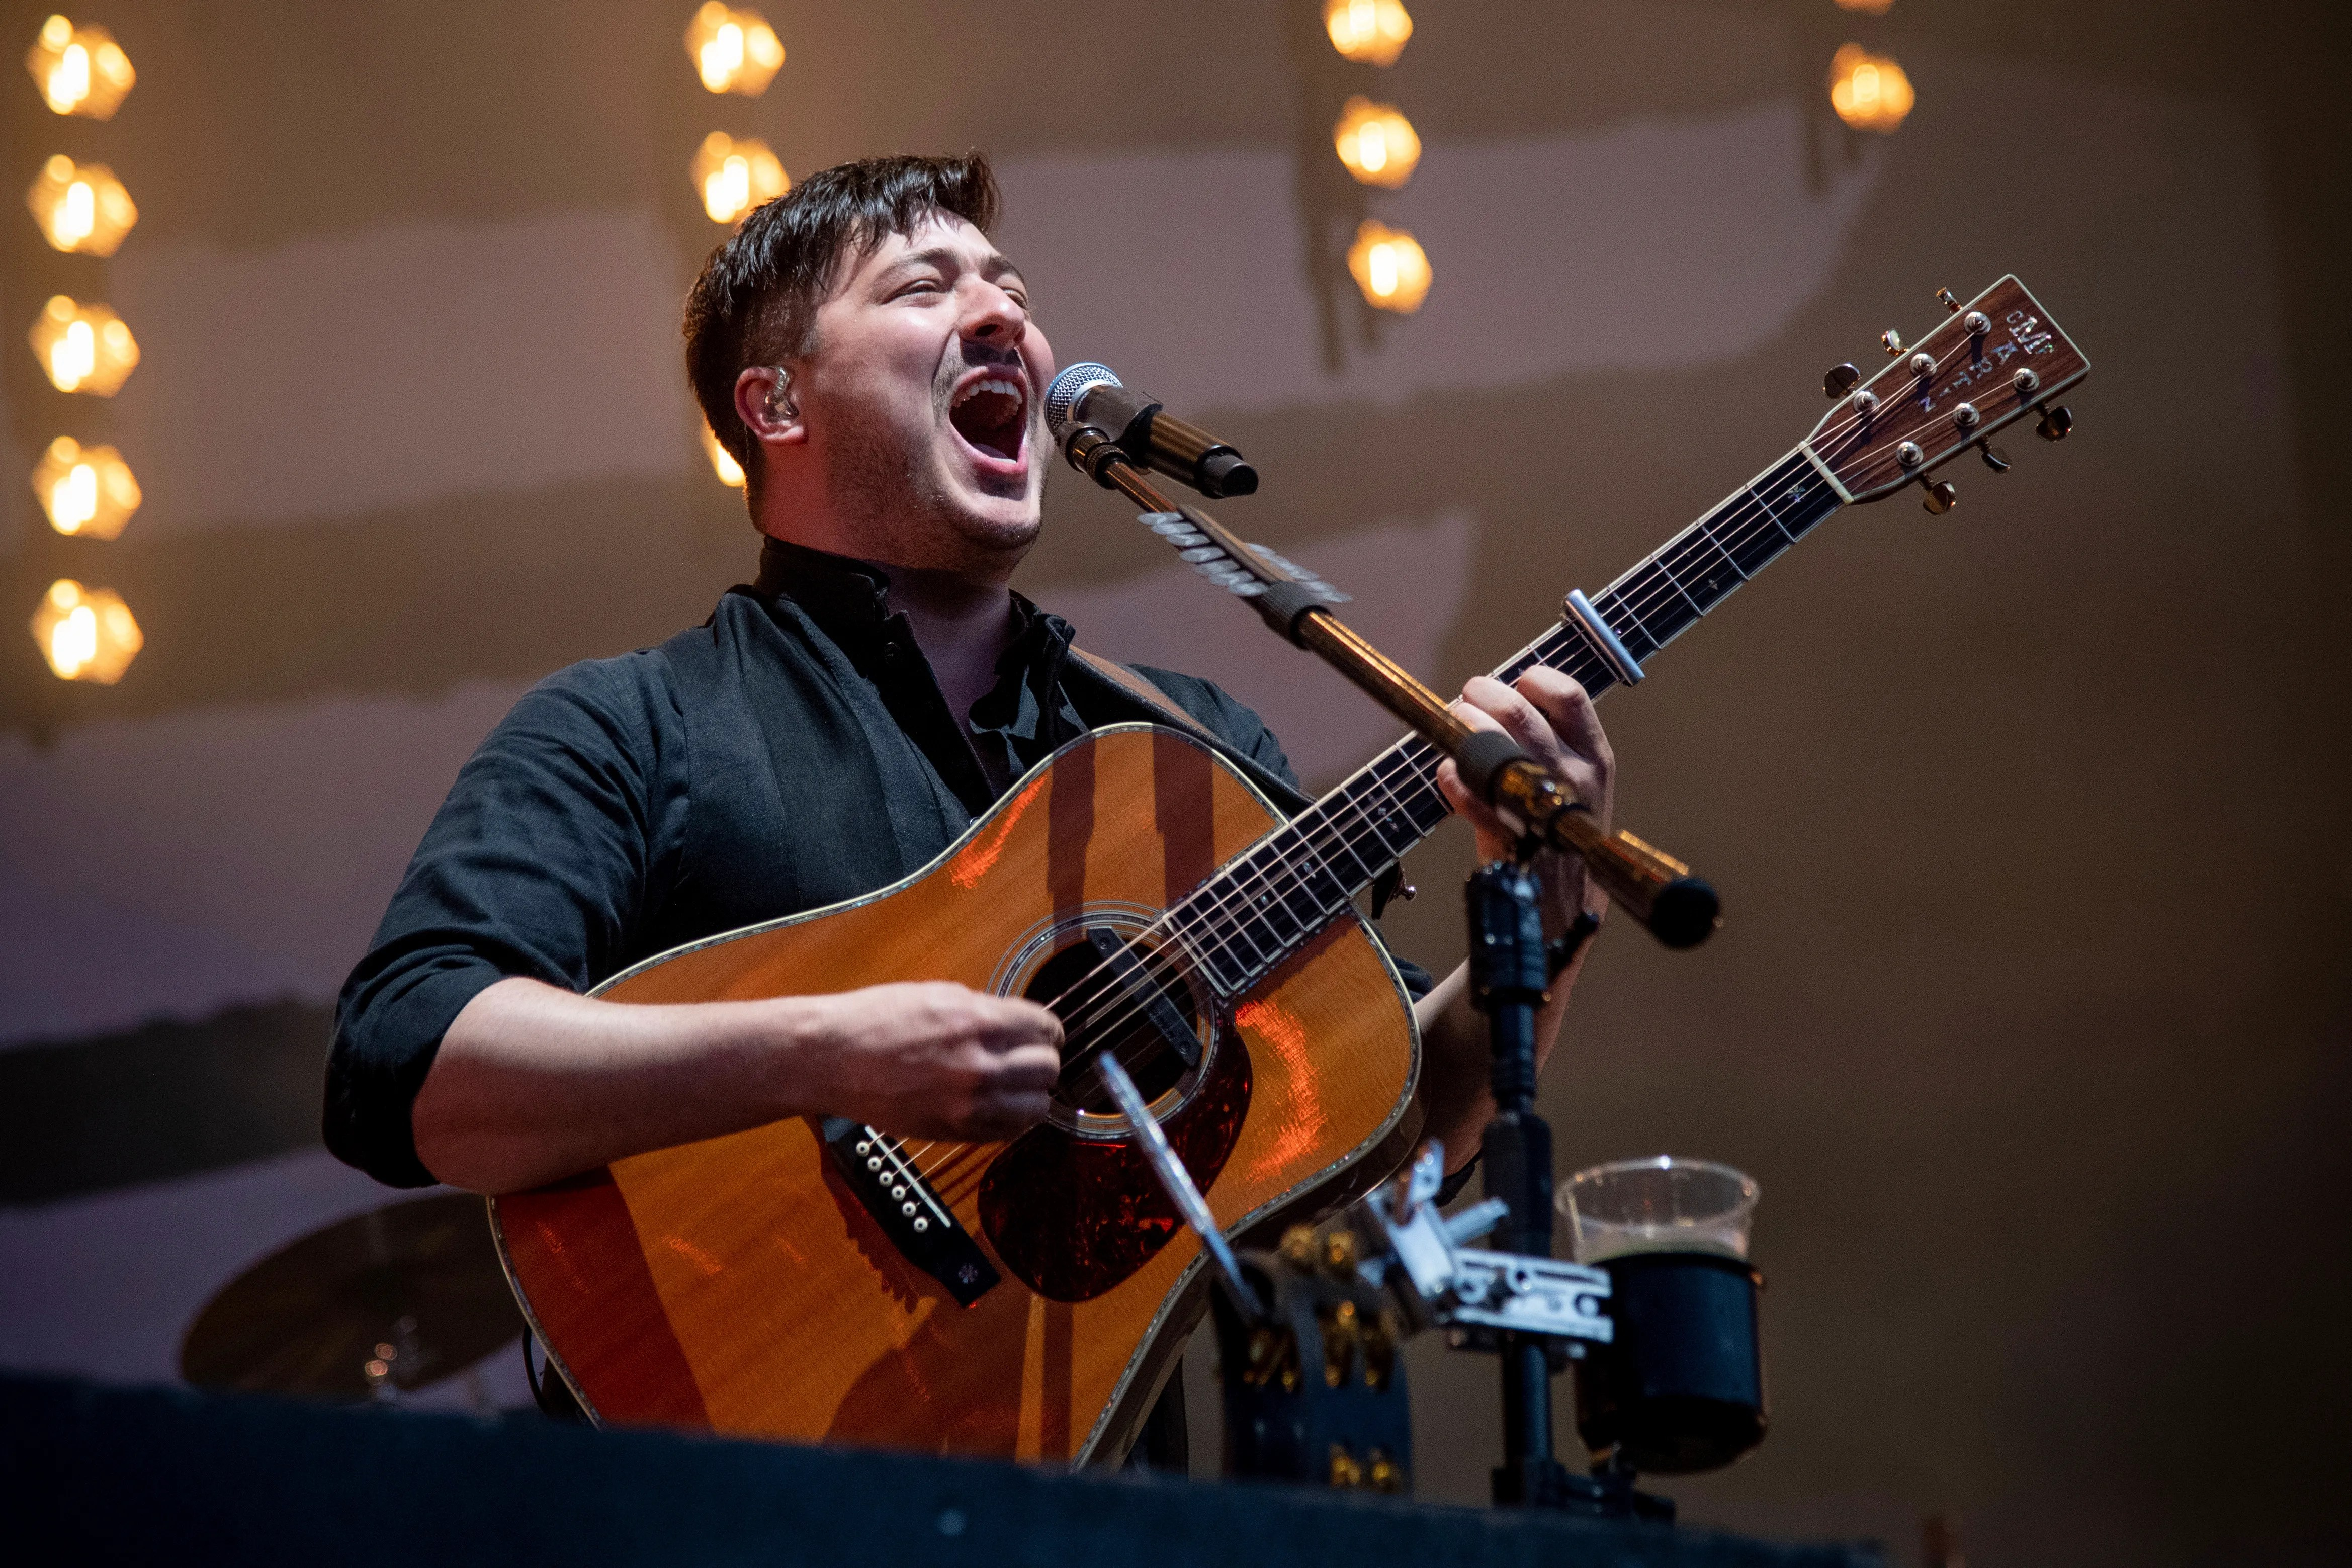 I am learning how to play the guitar and what famous song would be easy to play. Mumford Sons Frontman On Ted Lasso Gardening And Afc Wimbledon